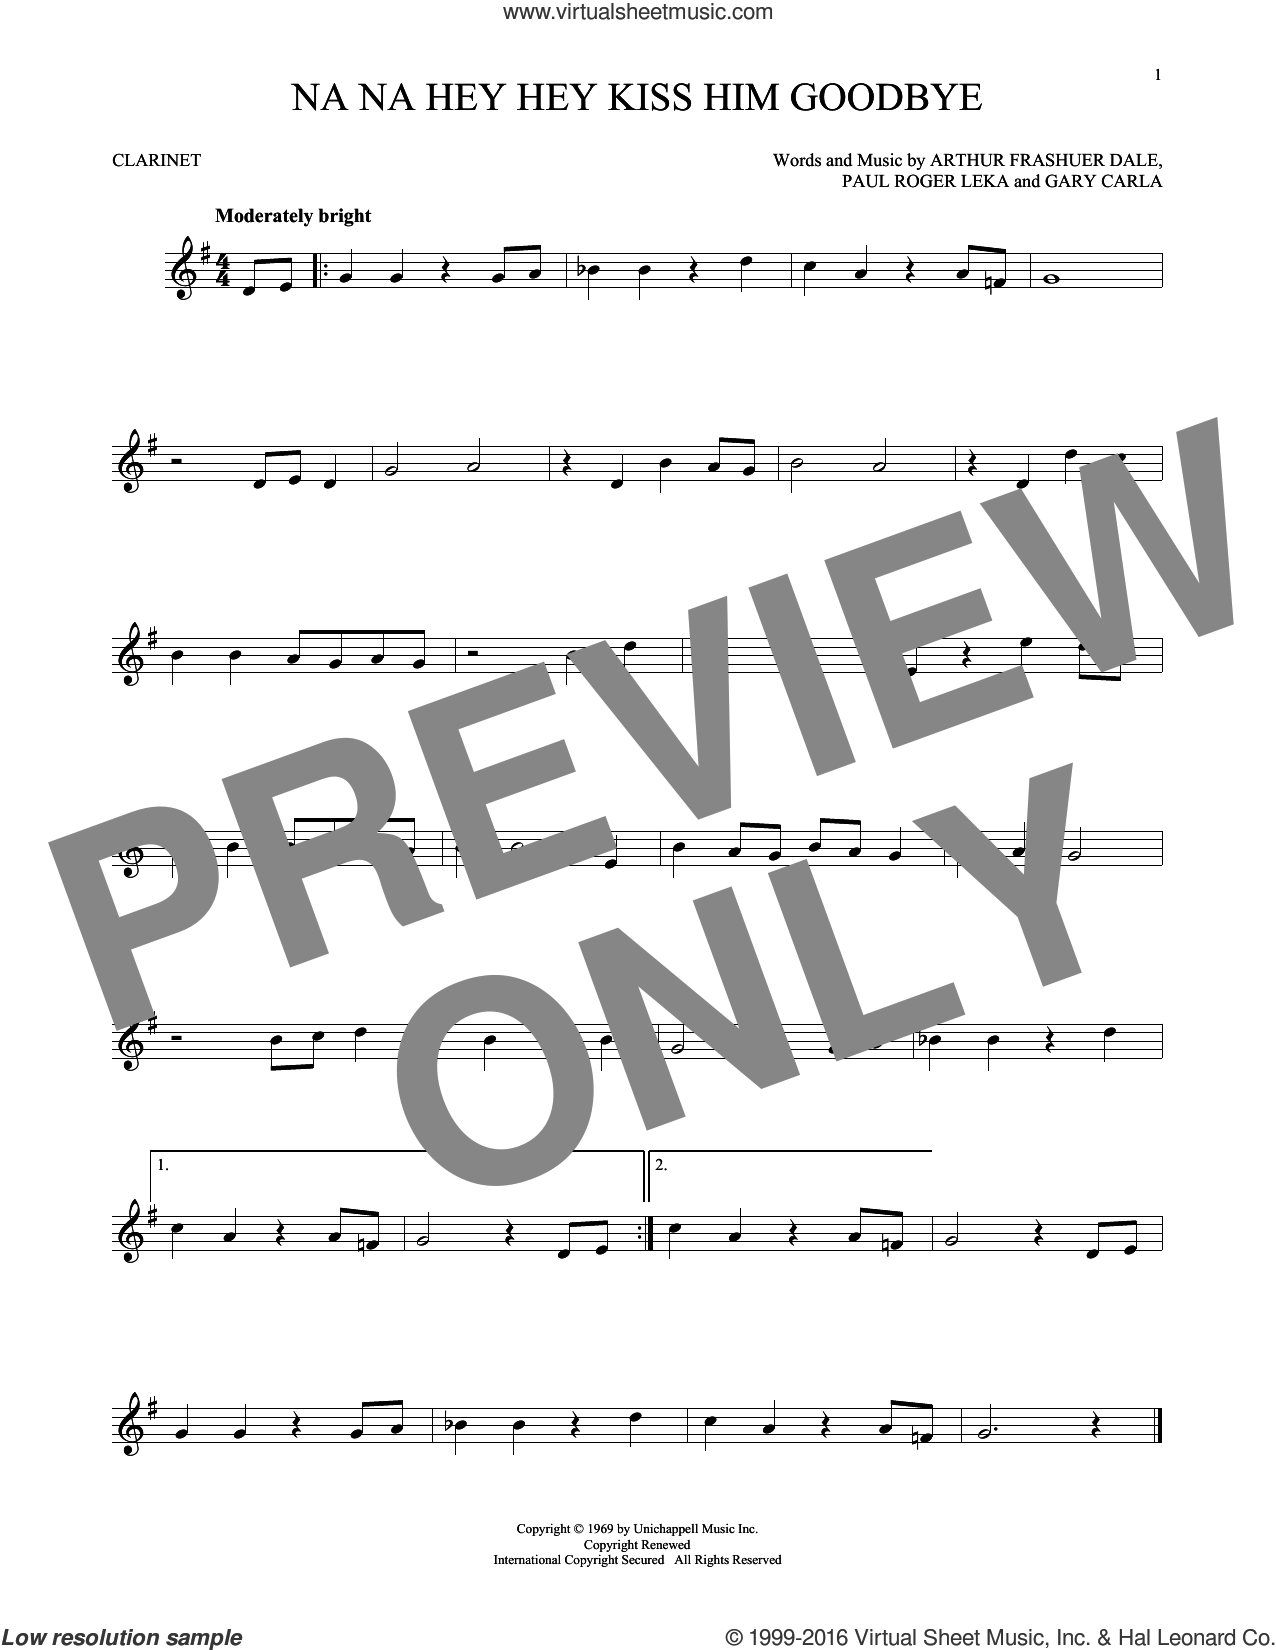 Na Na Hey Hey Kiss Him Goodbye sheet music for clarinet solo by Steam, Dale Frashuer, Gary De Carlo and Paul Leka, intermediate skill level